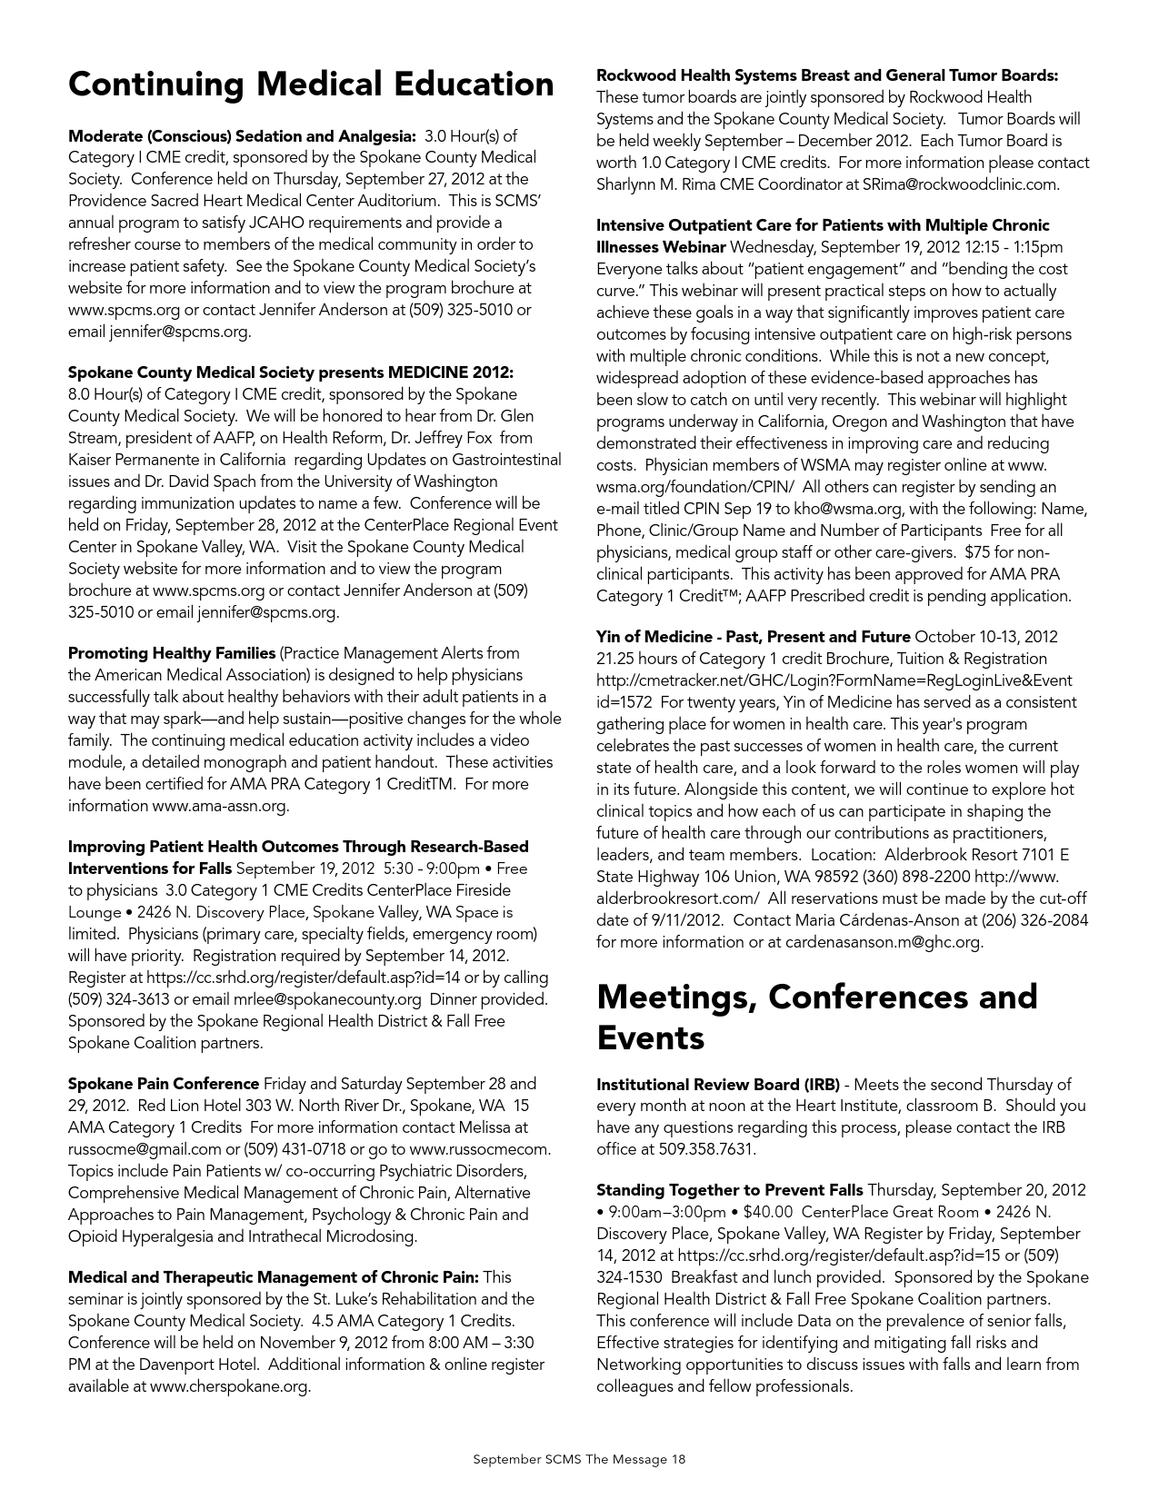 The Message, September 2012 by Spokane County Medical